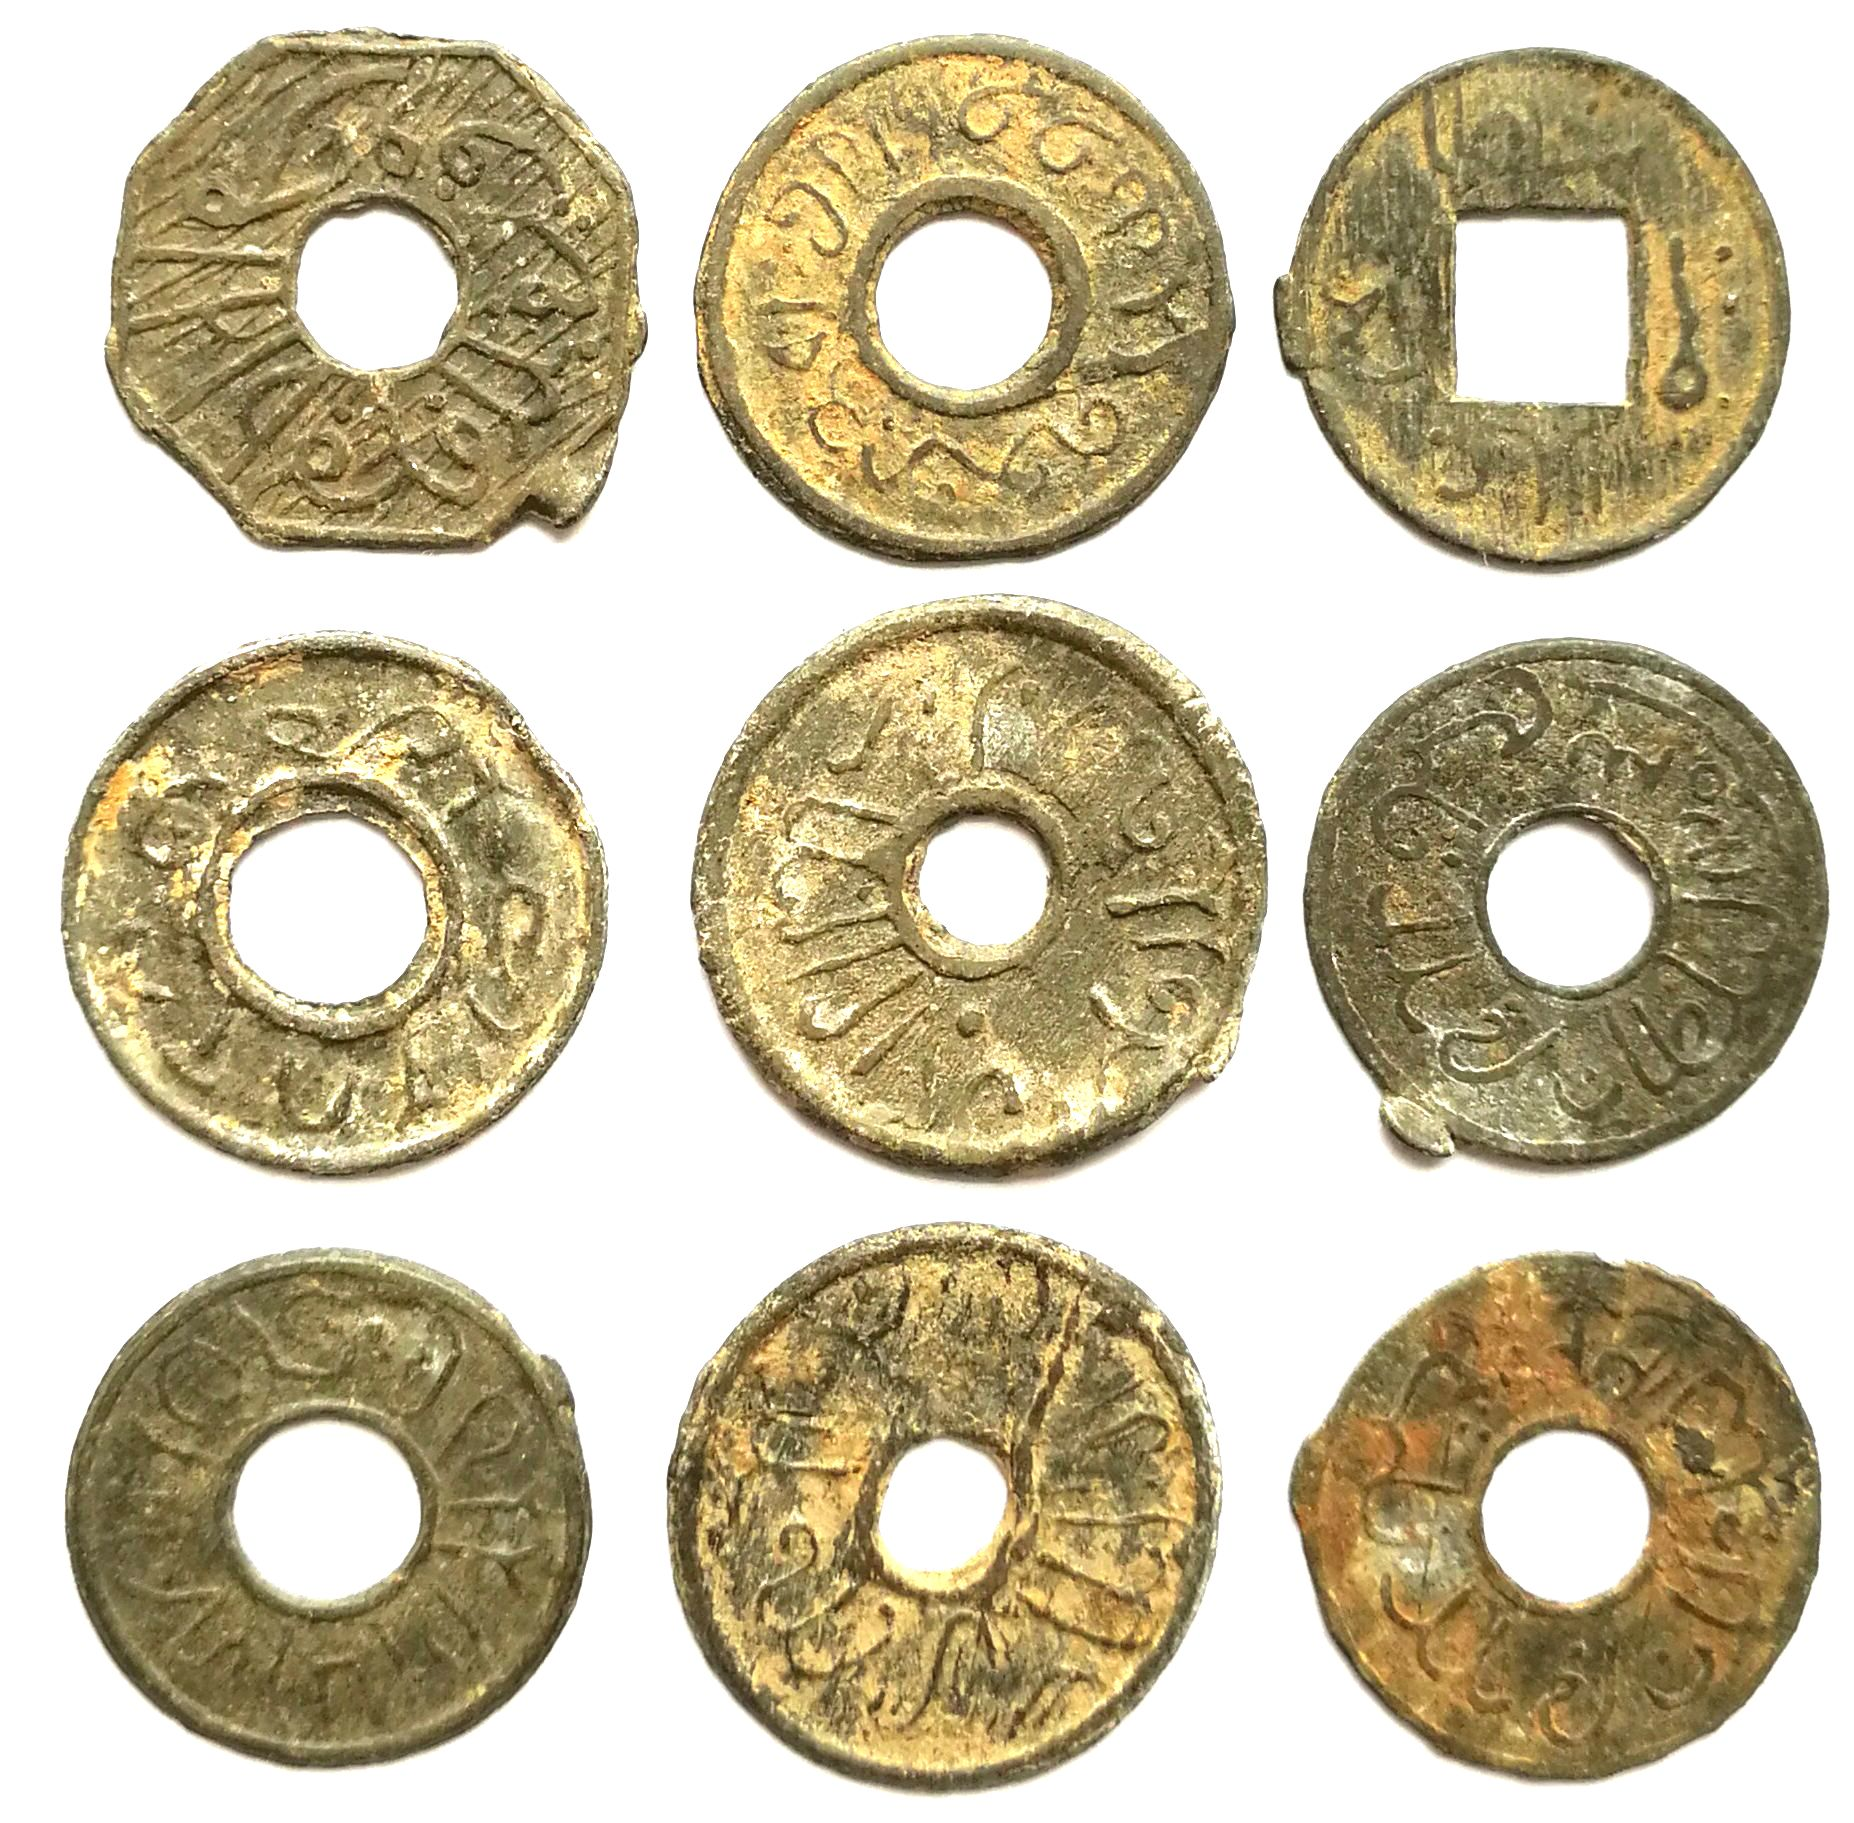 T2153, Ancient Java Bantam Banten Coin, 9 Pcs Tin, Minted in Palembang, 1700's